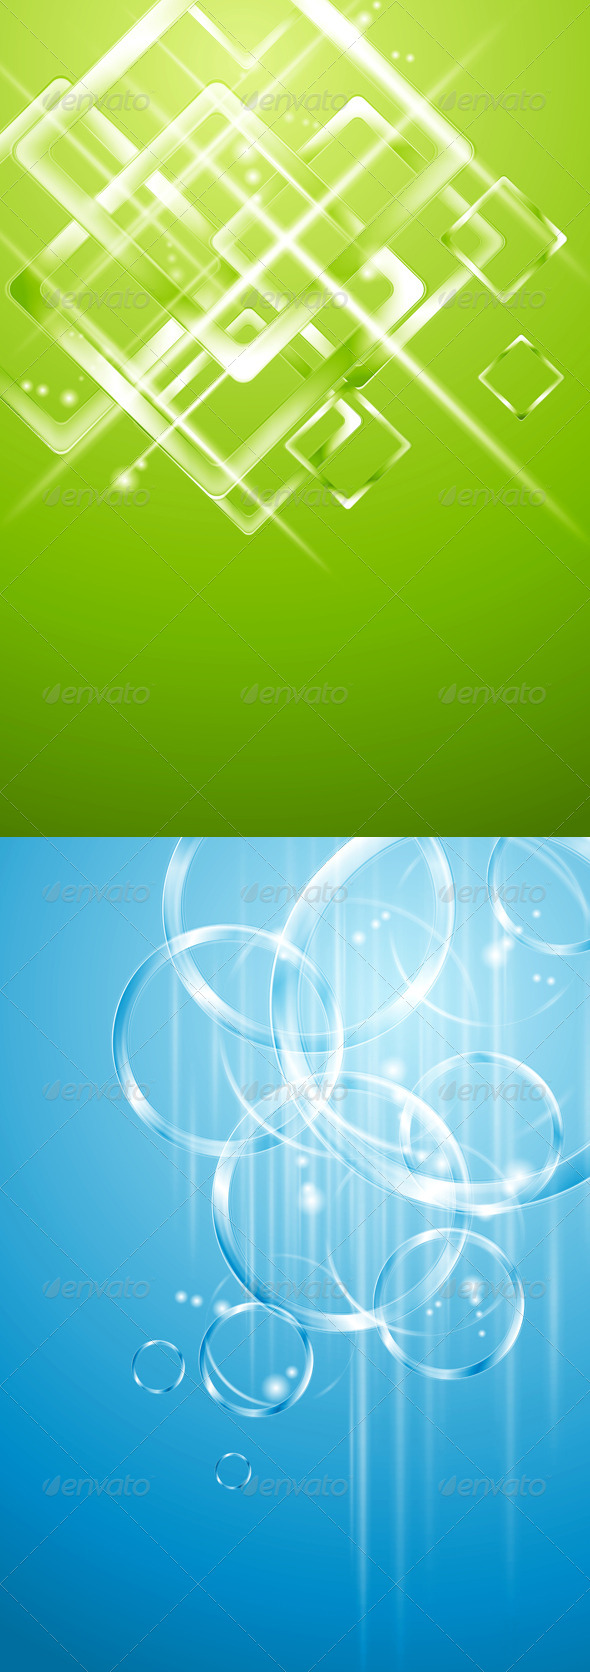 GraphicRiver Geometrical and Circle Vector Designs 4521042